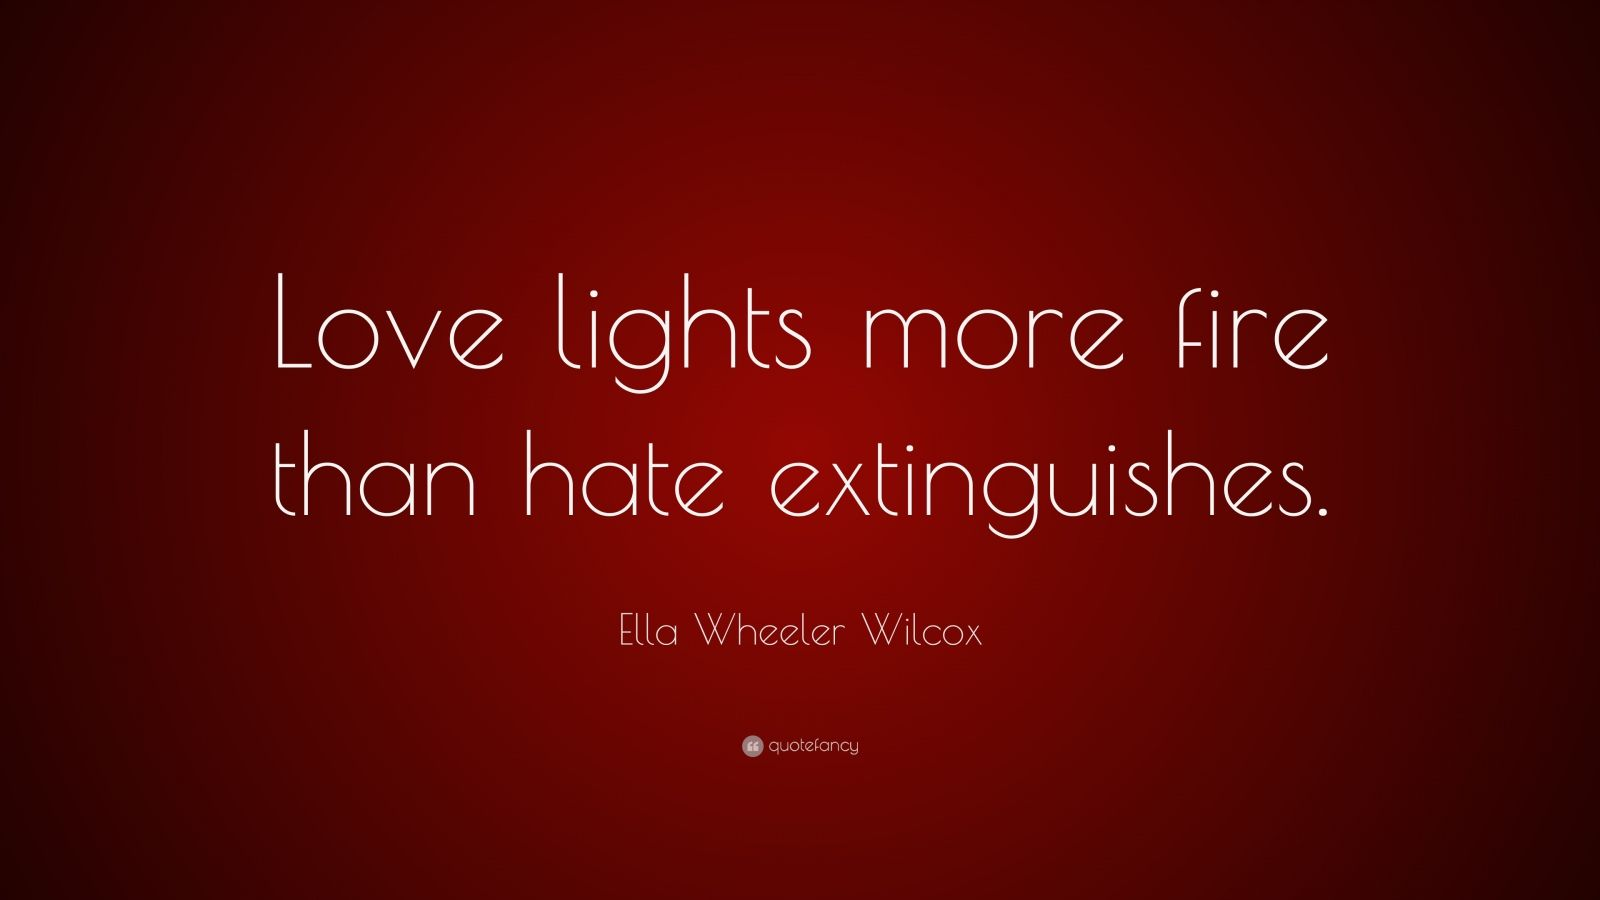 """Ella Wheeler Wilcox Quote: """"Love lights more fire than hate extinguishes."""""""